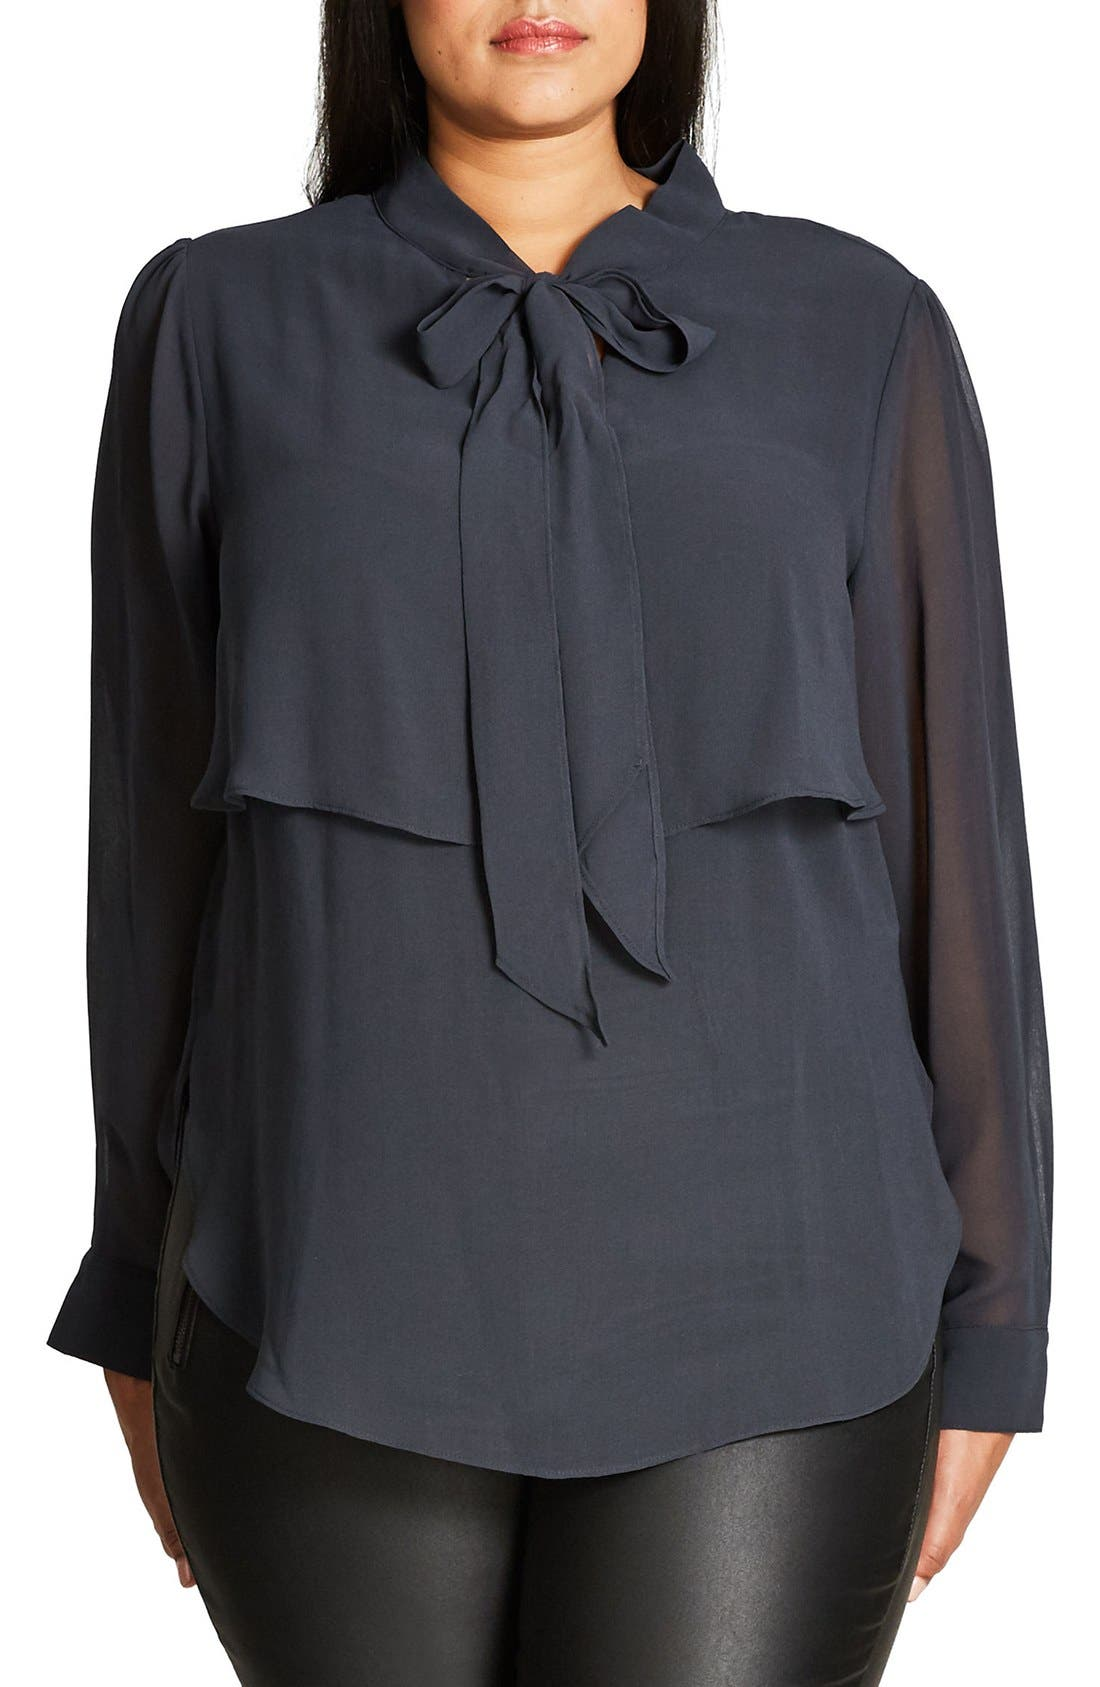 CITY CHIC Juliet Tie Neck Blouse